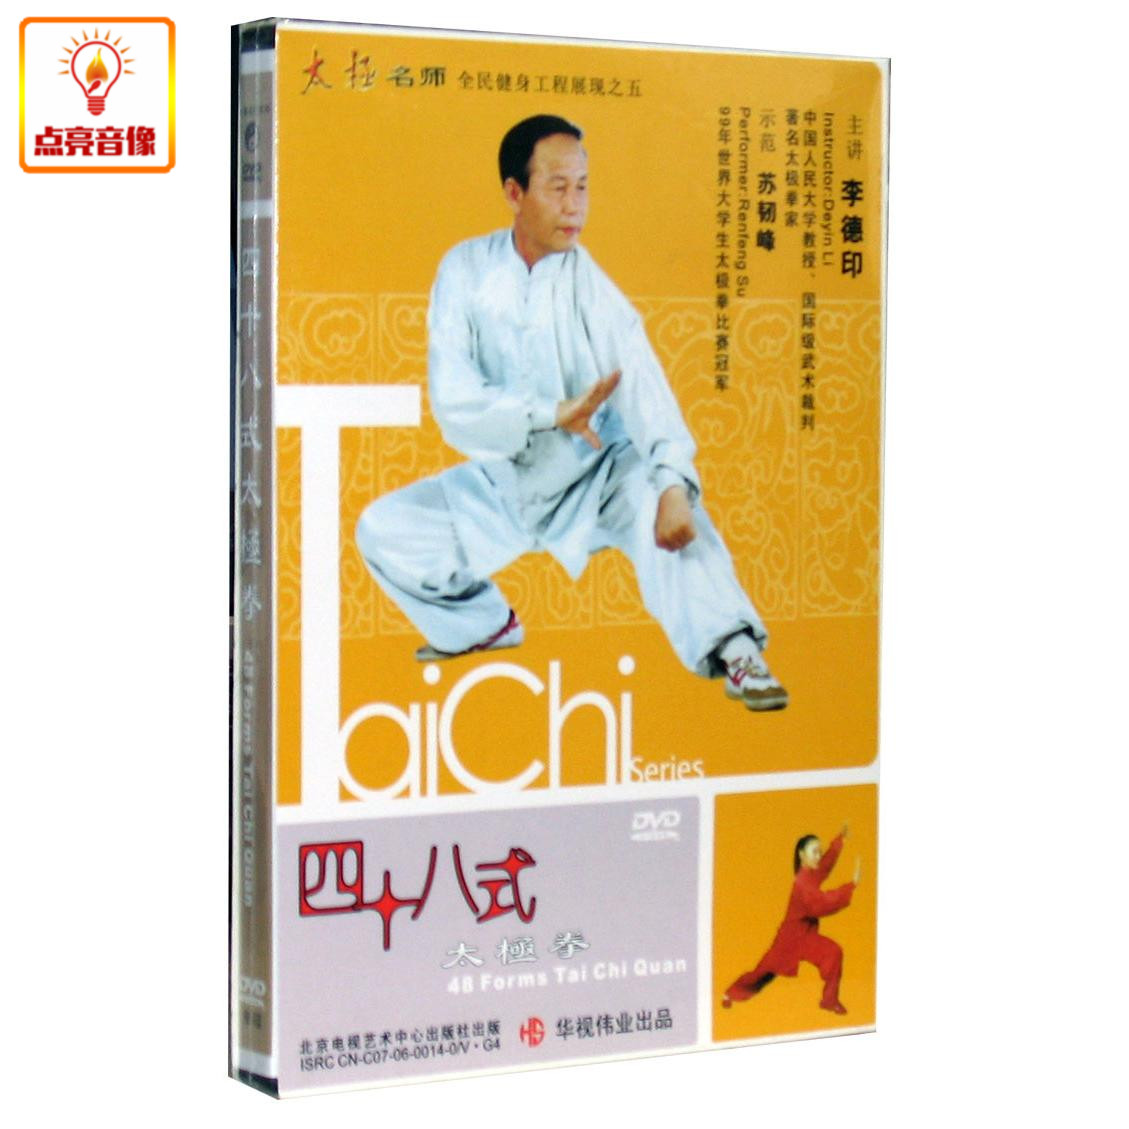 Encyclopedia of 48 type forty-eight style taijiquan dvd audio and video li indian speaker ren feng su model